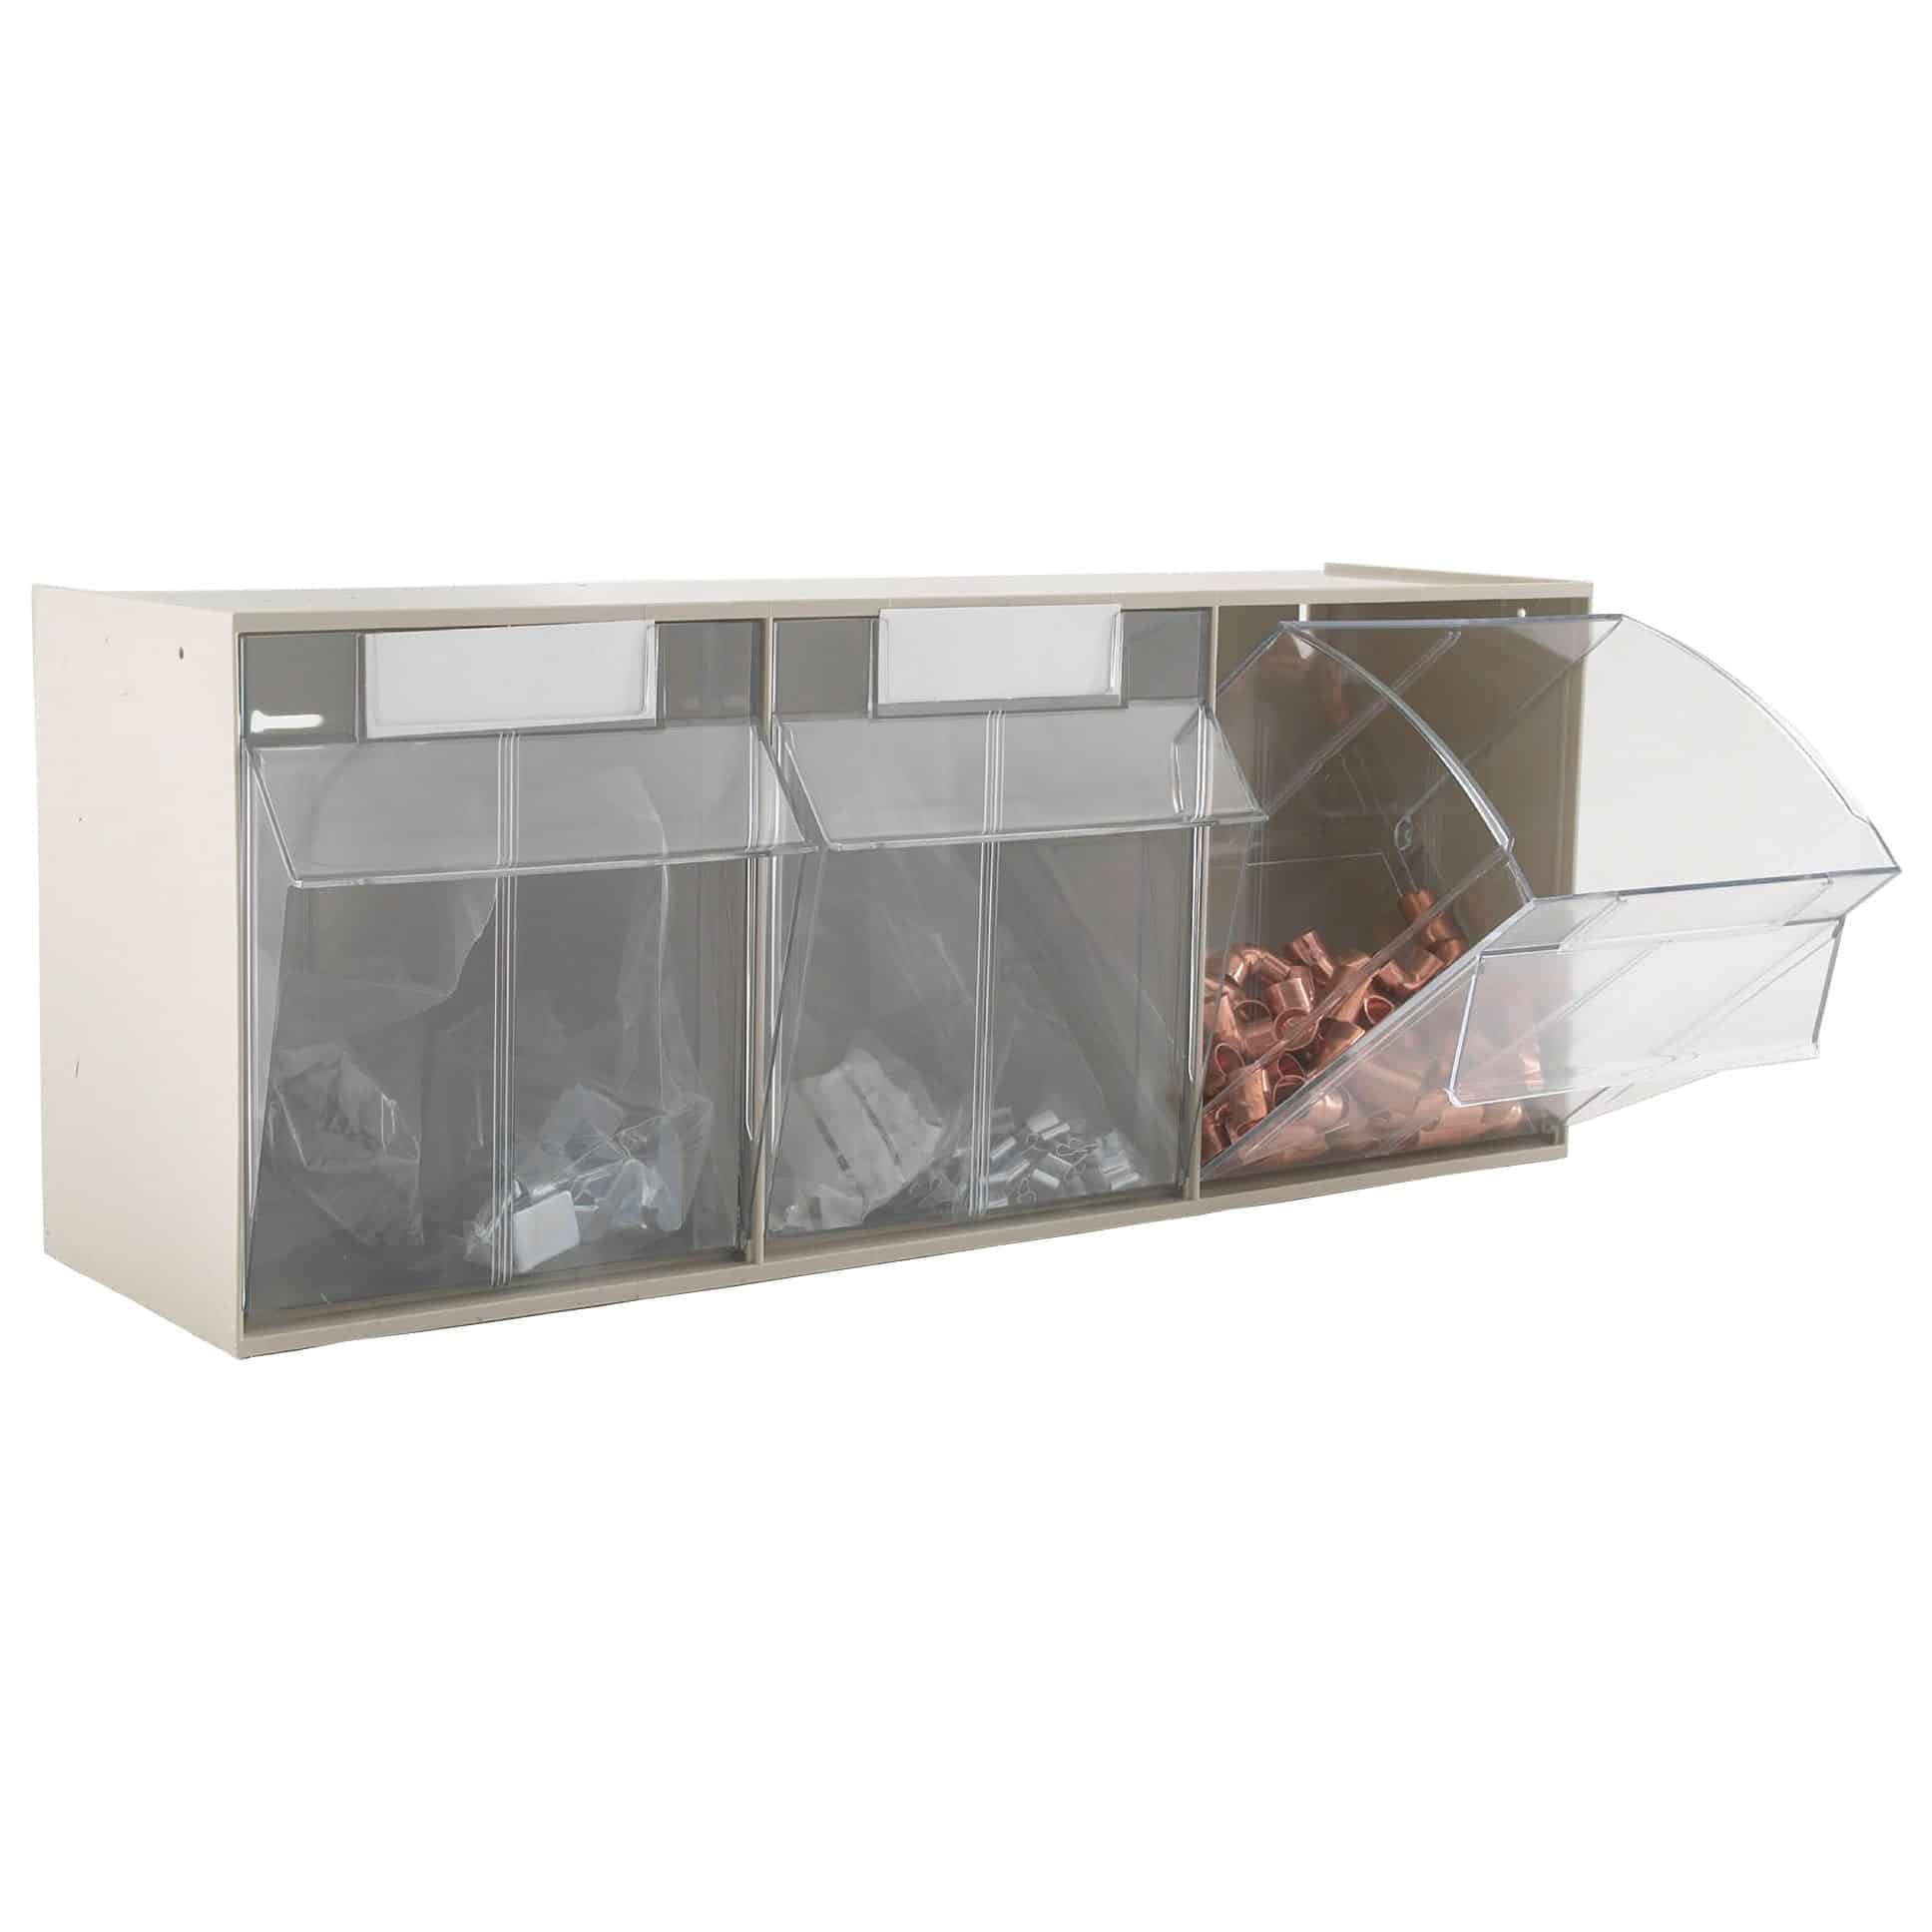 Barton Topstore Clearbox Storage Containers